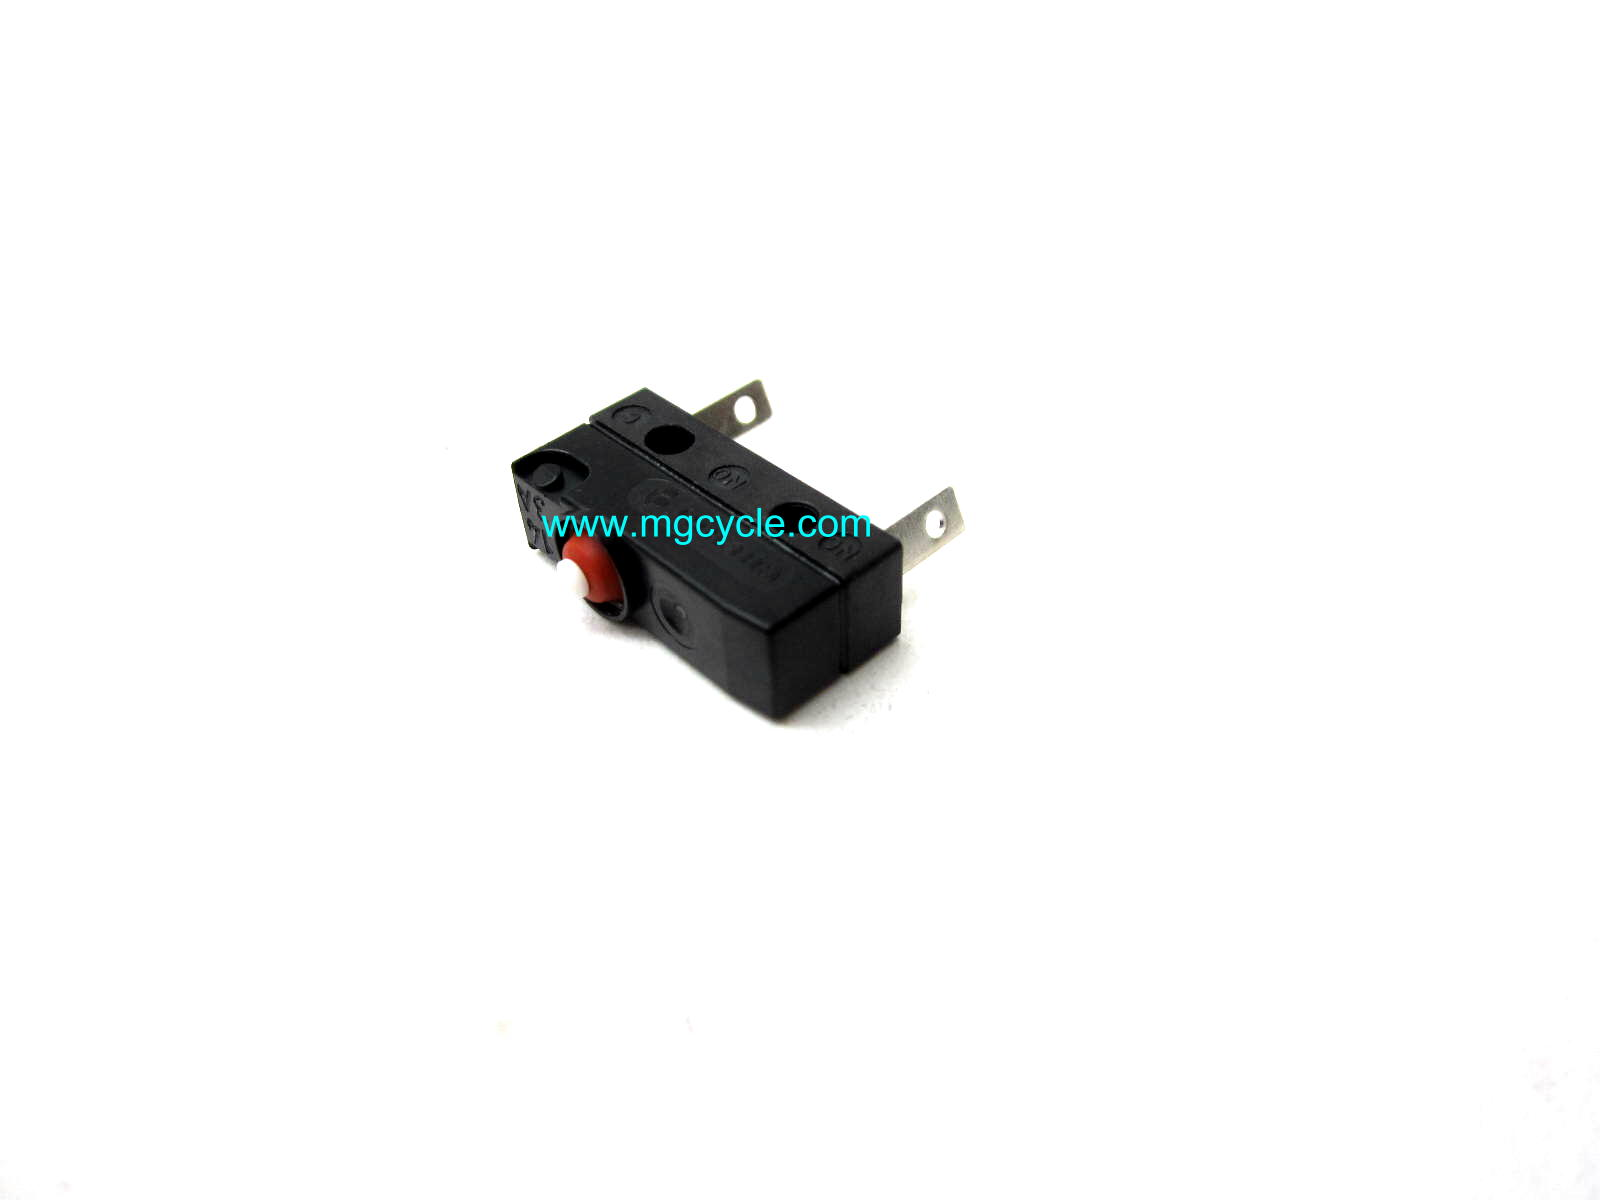 brake light switch for many 1990's-2000's models: GU30749860